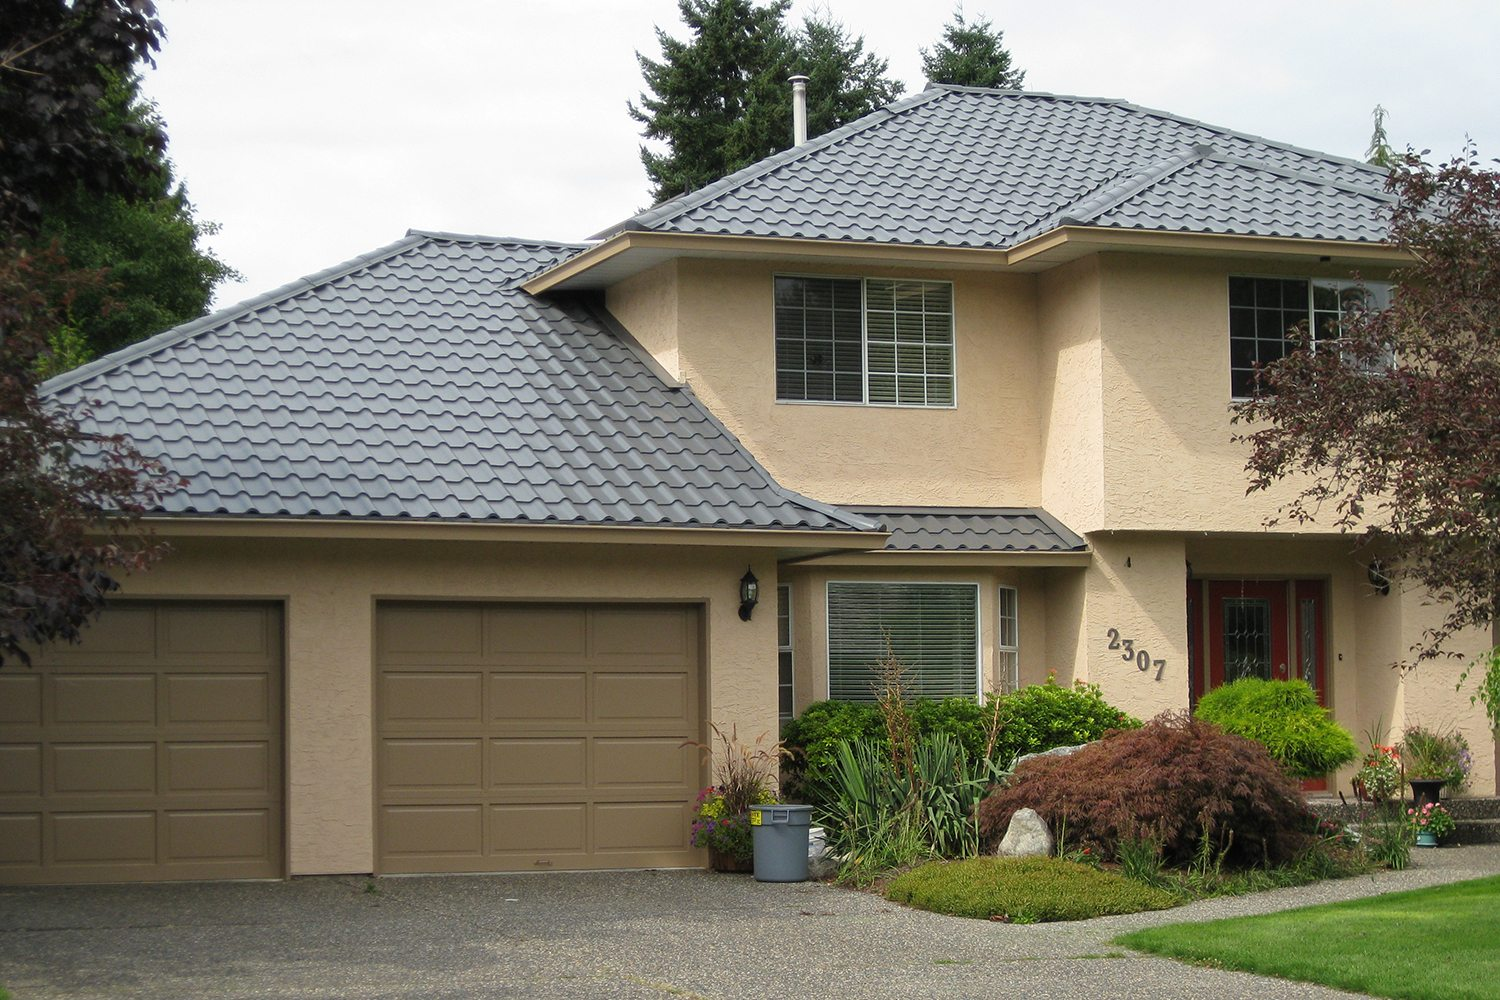 Interlock tile roof system new brunswick metal roofing - A brief guide to a durable roof ...